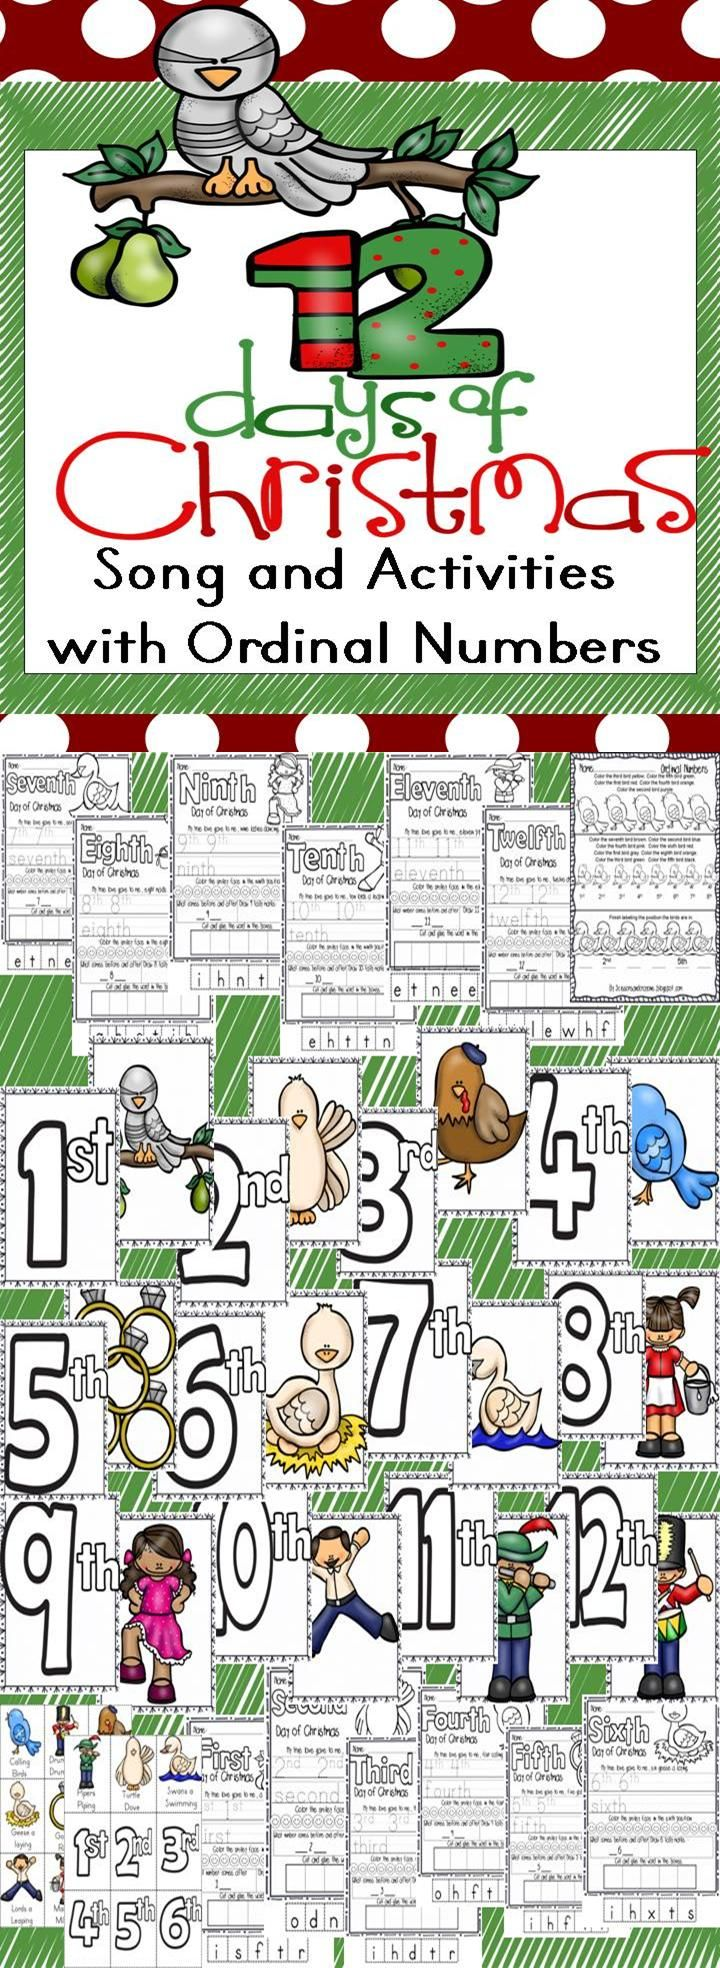 12 Days Of Christmas Song And Activities With Ordinal Numbers Printables Song Cards Game Days Of Christmas Song 12 Days Of Christmas Christmas Kindergarten [ 1968 x 720 Pixel ]